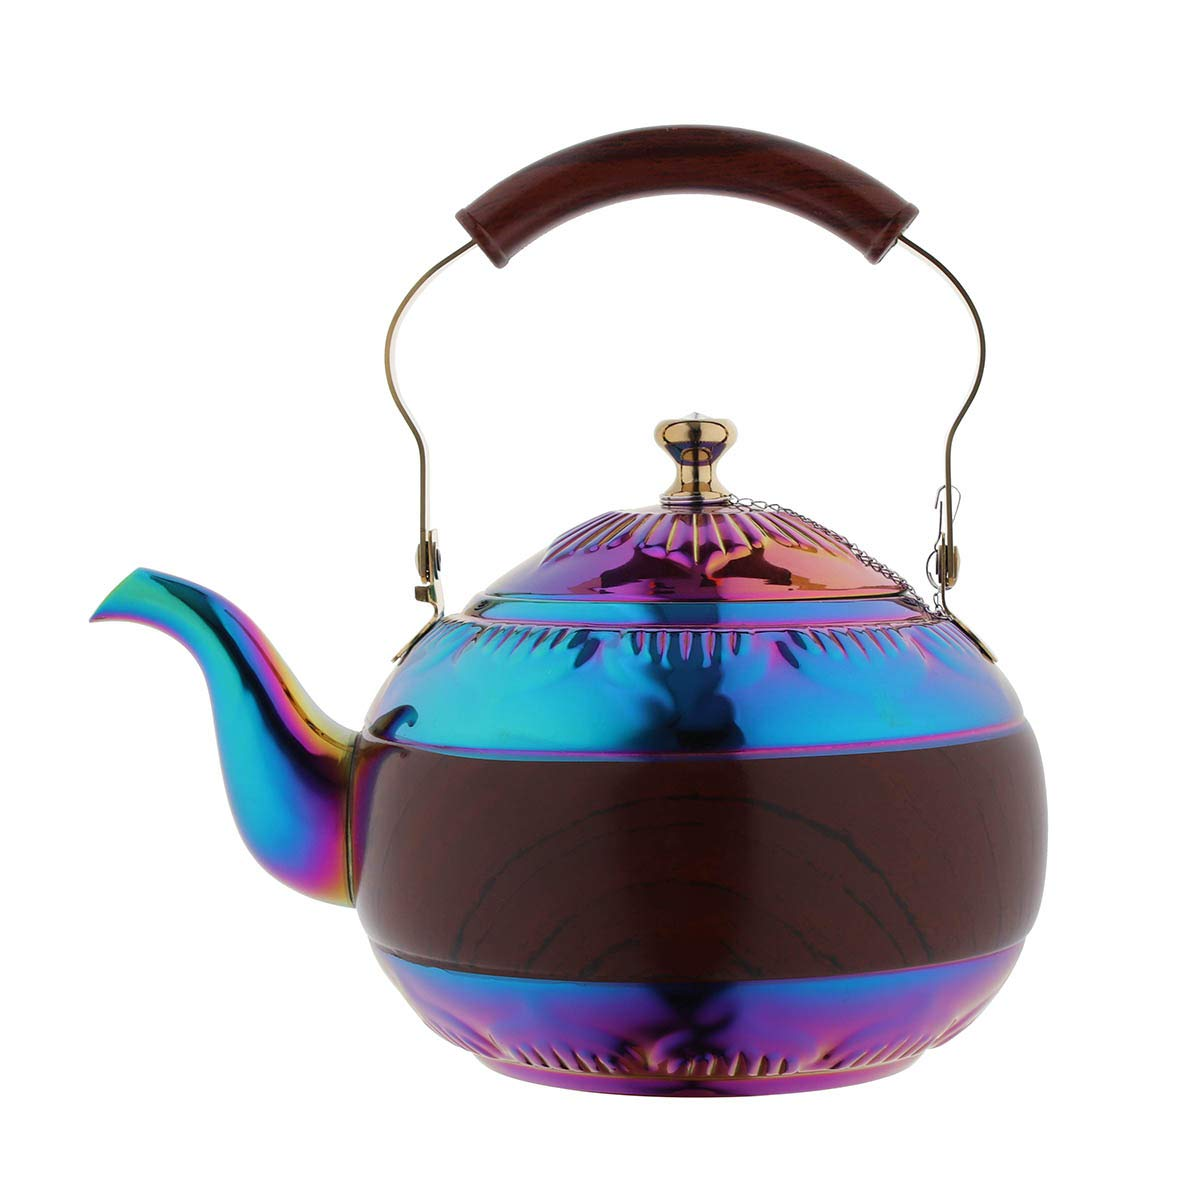 OMGard Tea Kettle with Infuser Loose Leaf Rainbow Teapot 2 Liter Tea Coffee Pot Stainless Steel Strainer Colorful Teakettle for Stovetop Induction Stove Top Boiling Water Camping 2 Quart / 68 Ounce 16-teapot